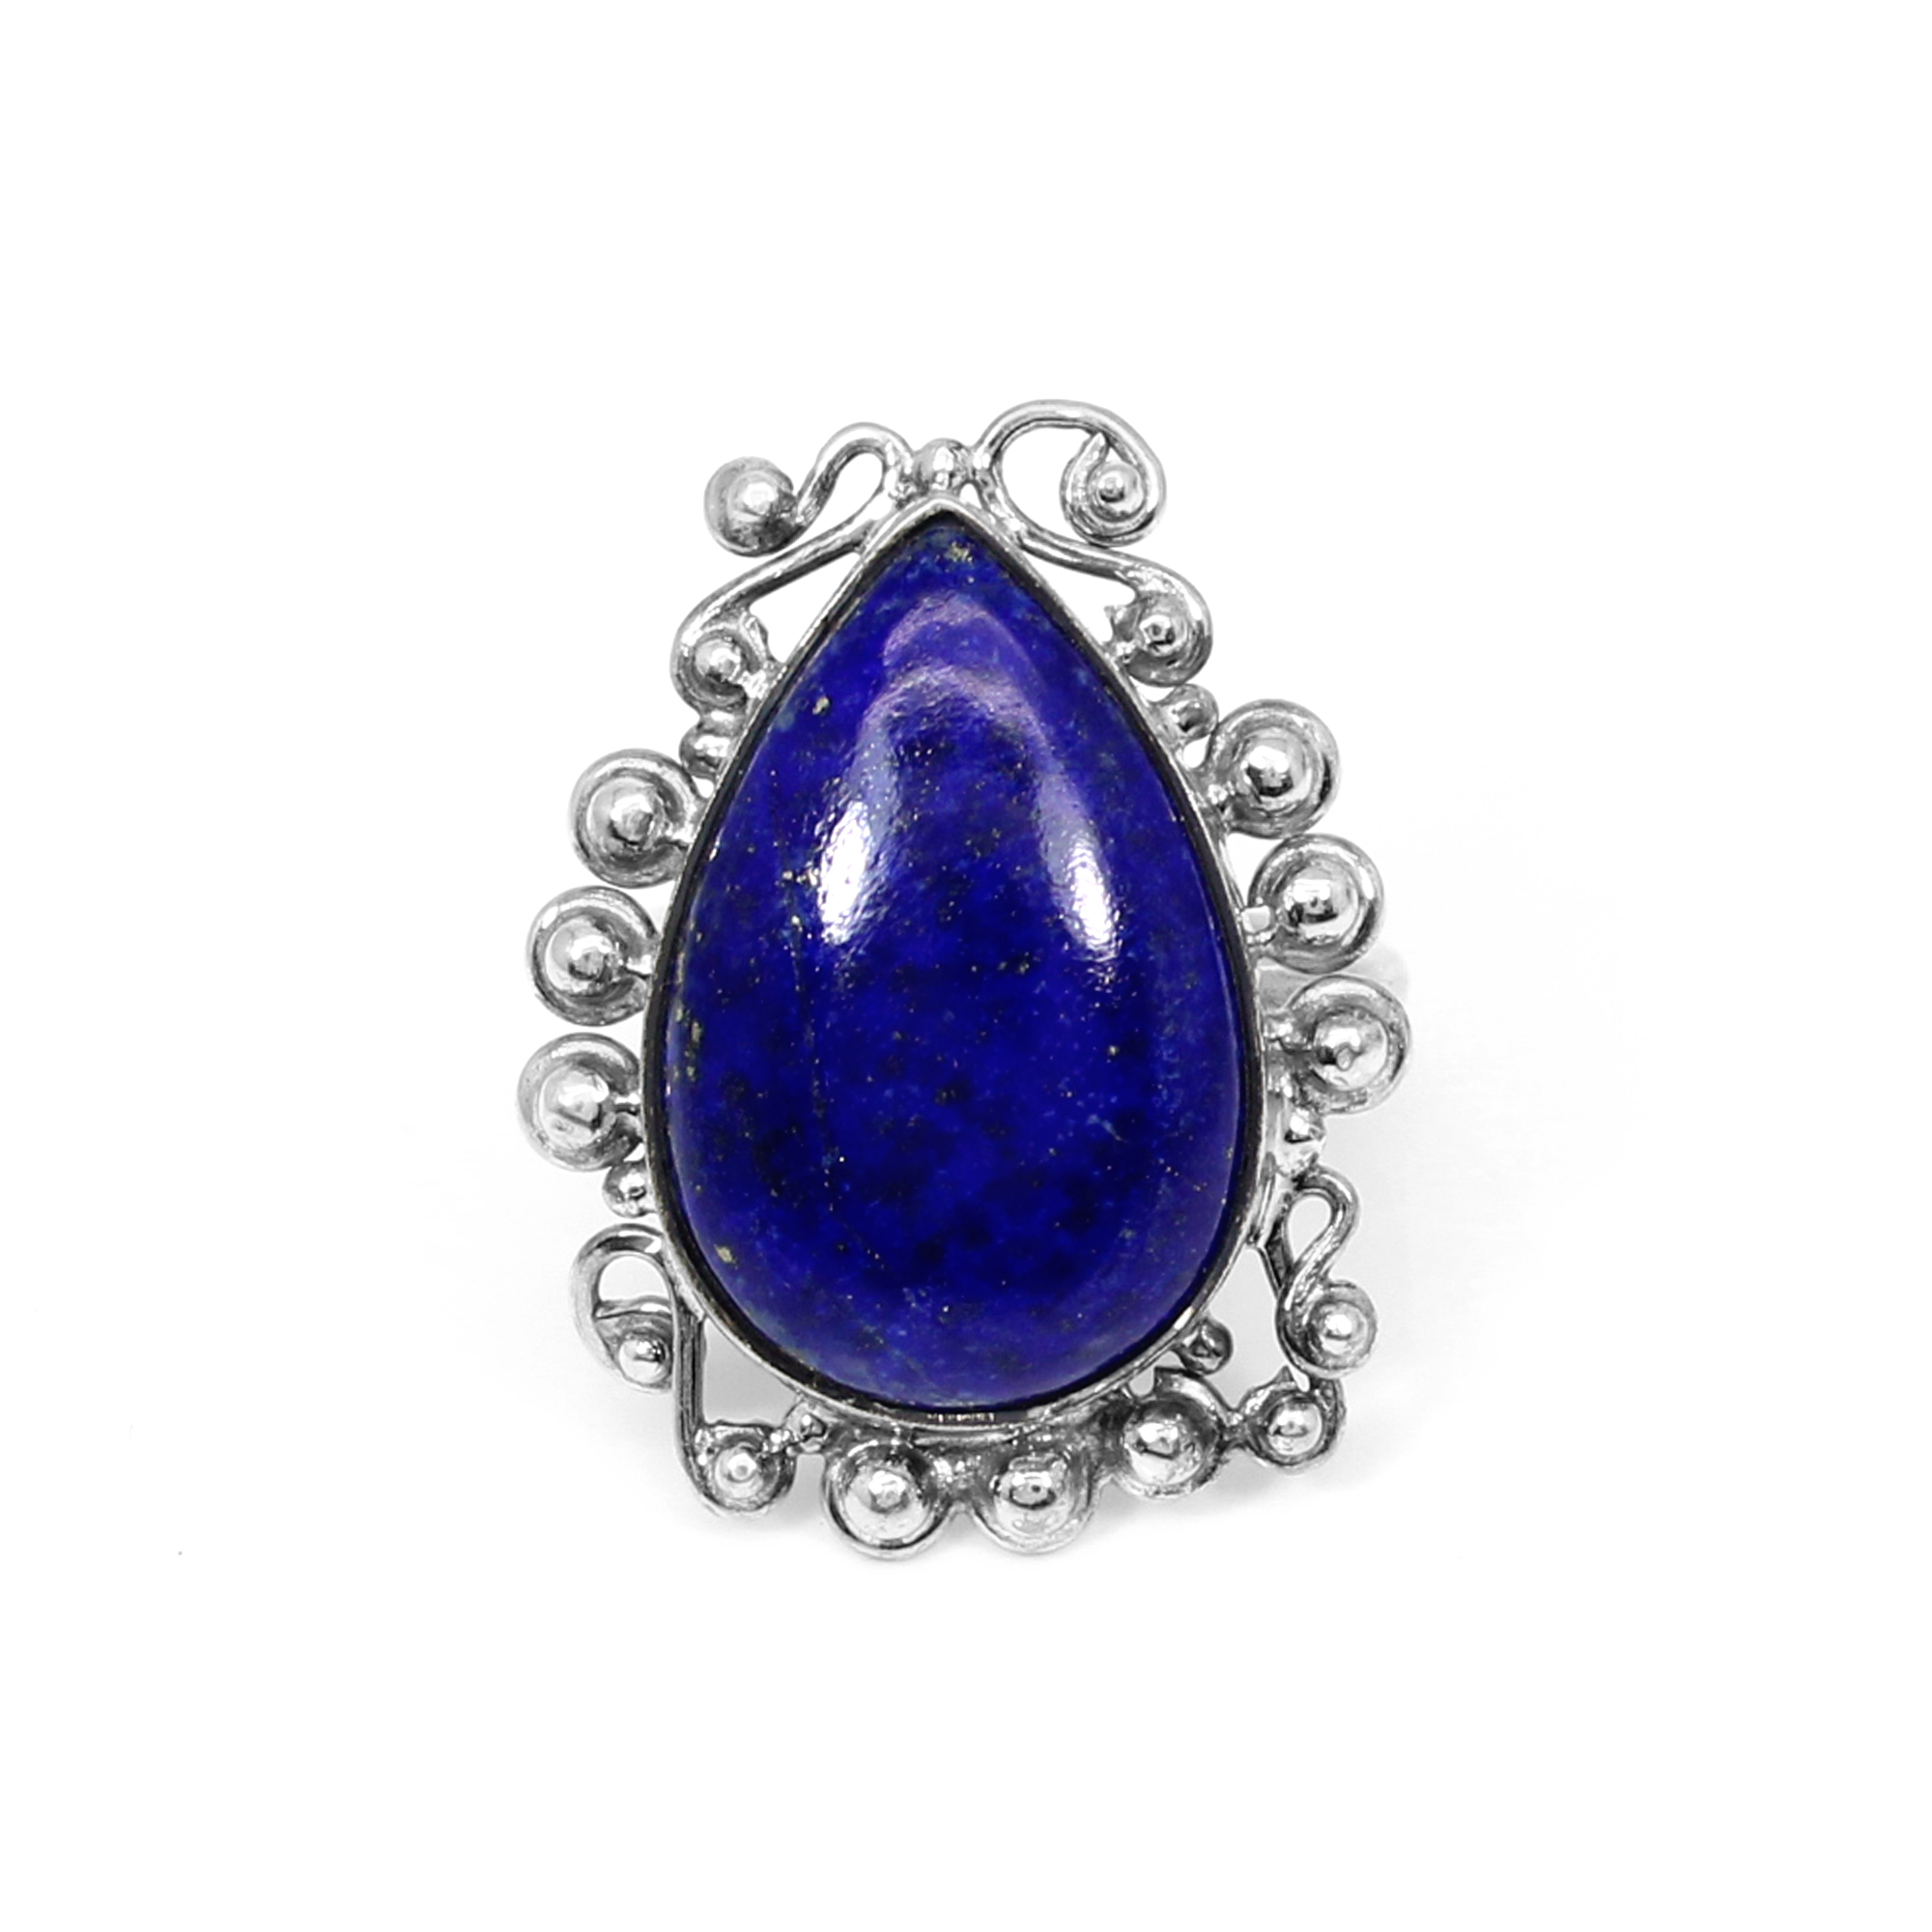 Exquisite Collection Natural Afghani Lapis Lazuli Gemstone Ring Solid 925 Sterling Silver Ring Designer Pear Cabochon Ring